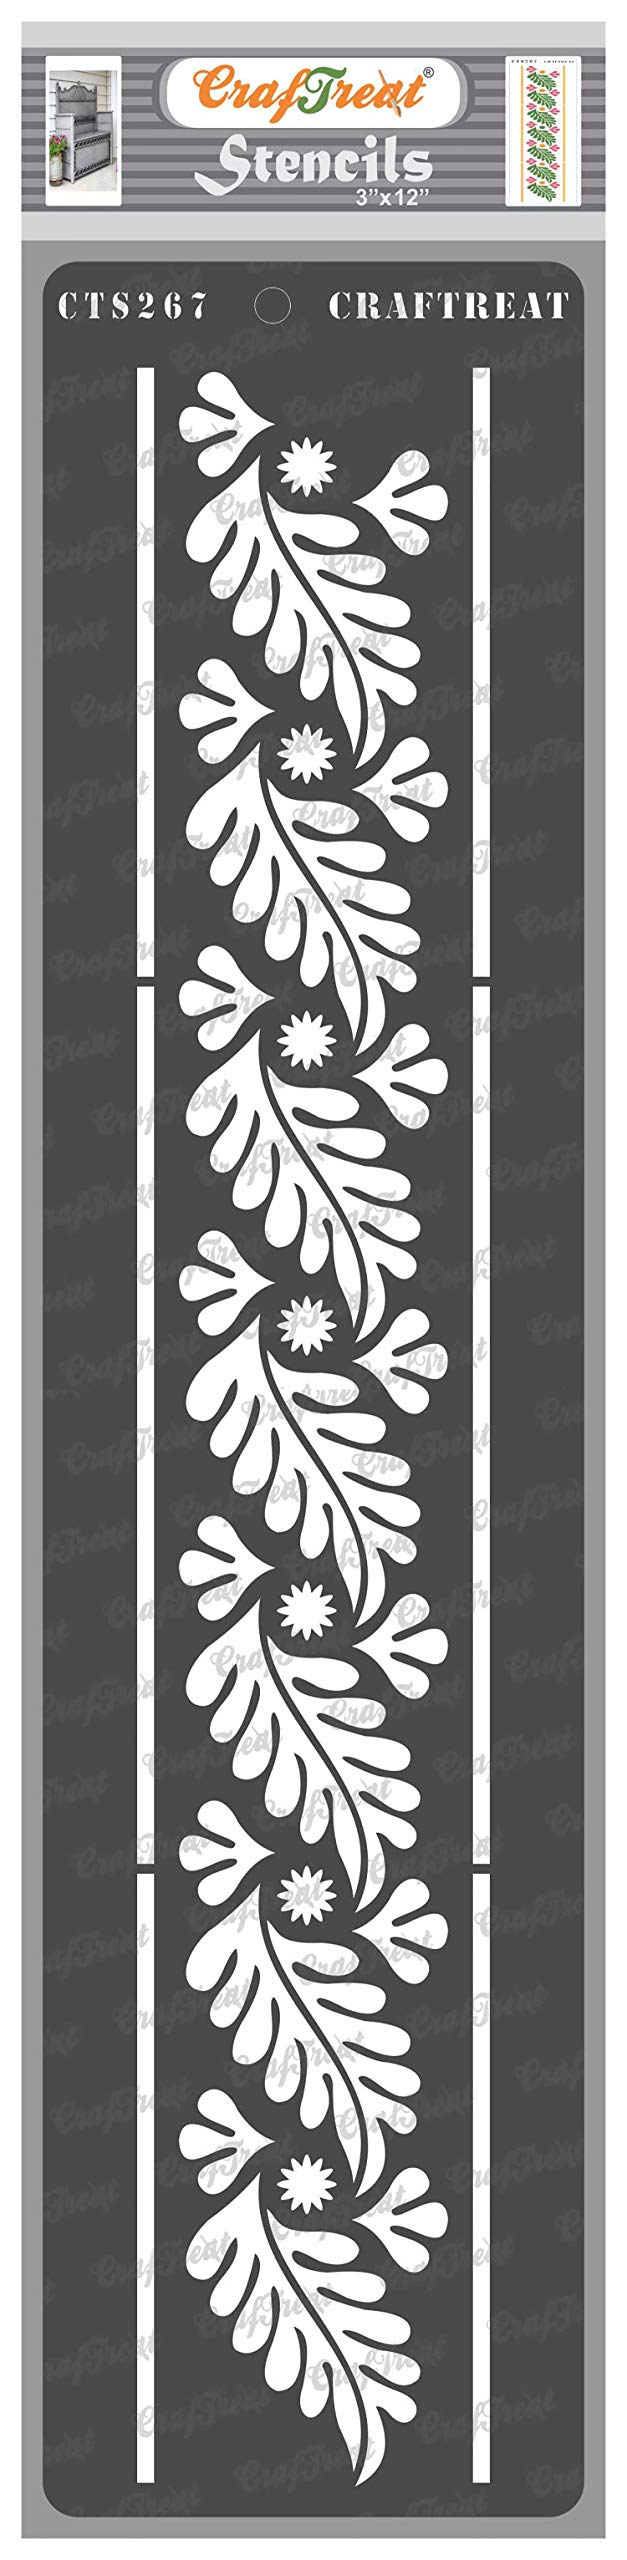 CrafTreat Leaf Border Stencils for Painting on Wood, Canvas, Paper, Fabric, Floor, Wall and Tile - Border11-3x12 Inches - Reusable DIY Art and Craft Stencils - Flourish Border Stencil